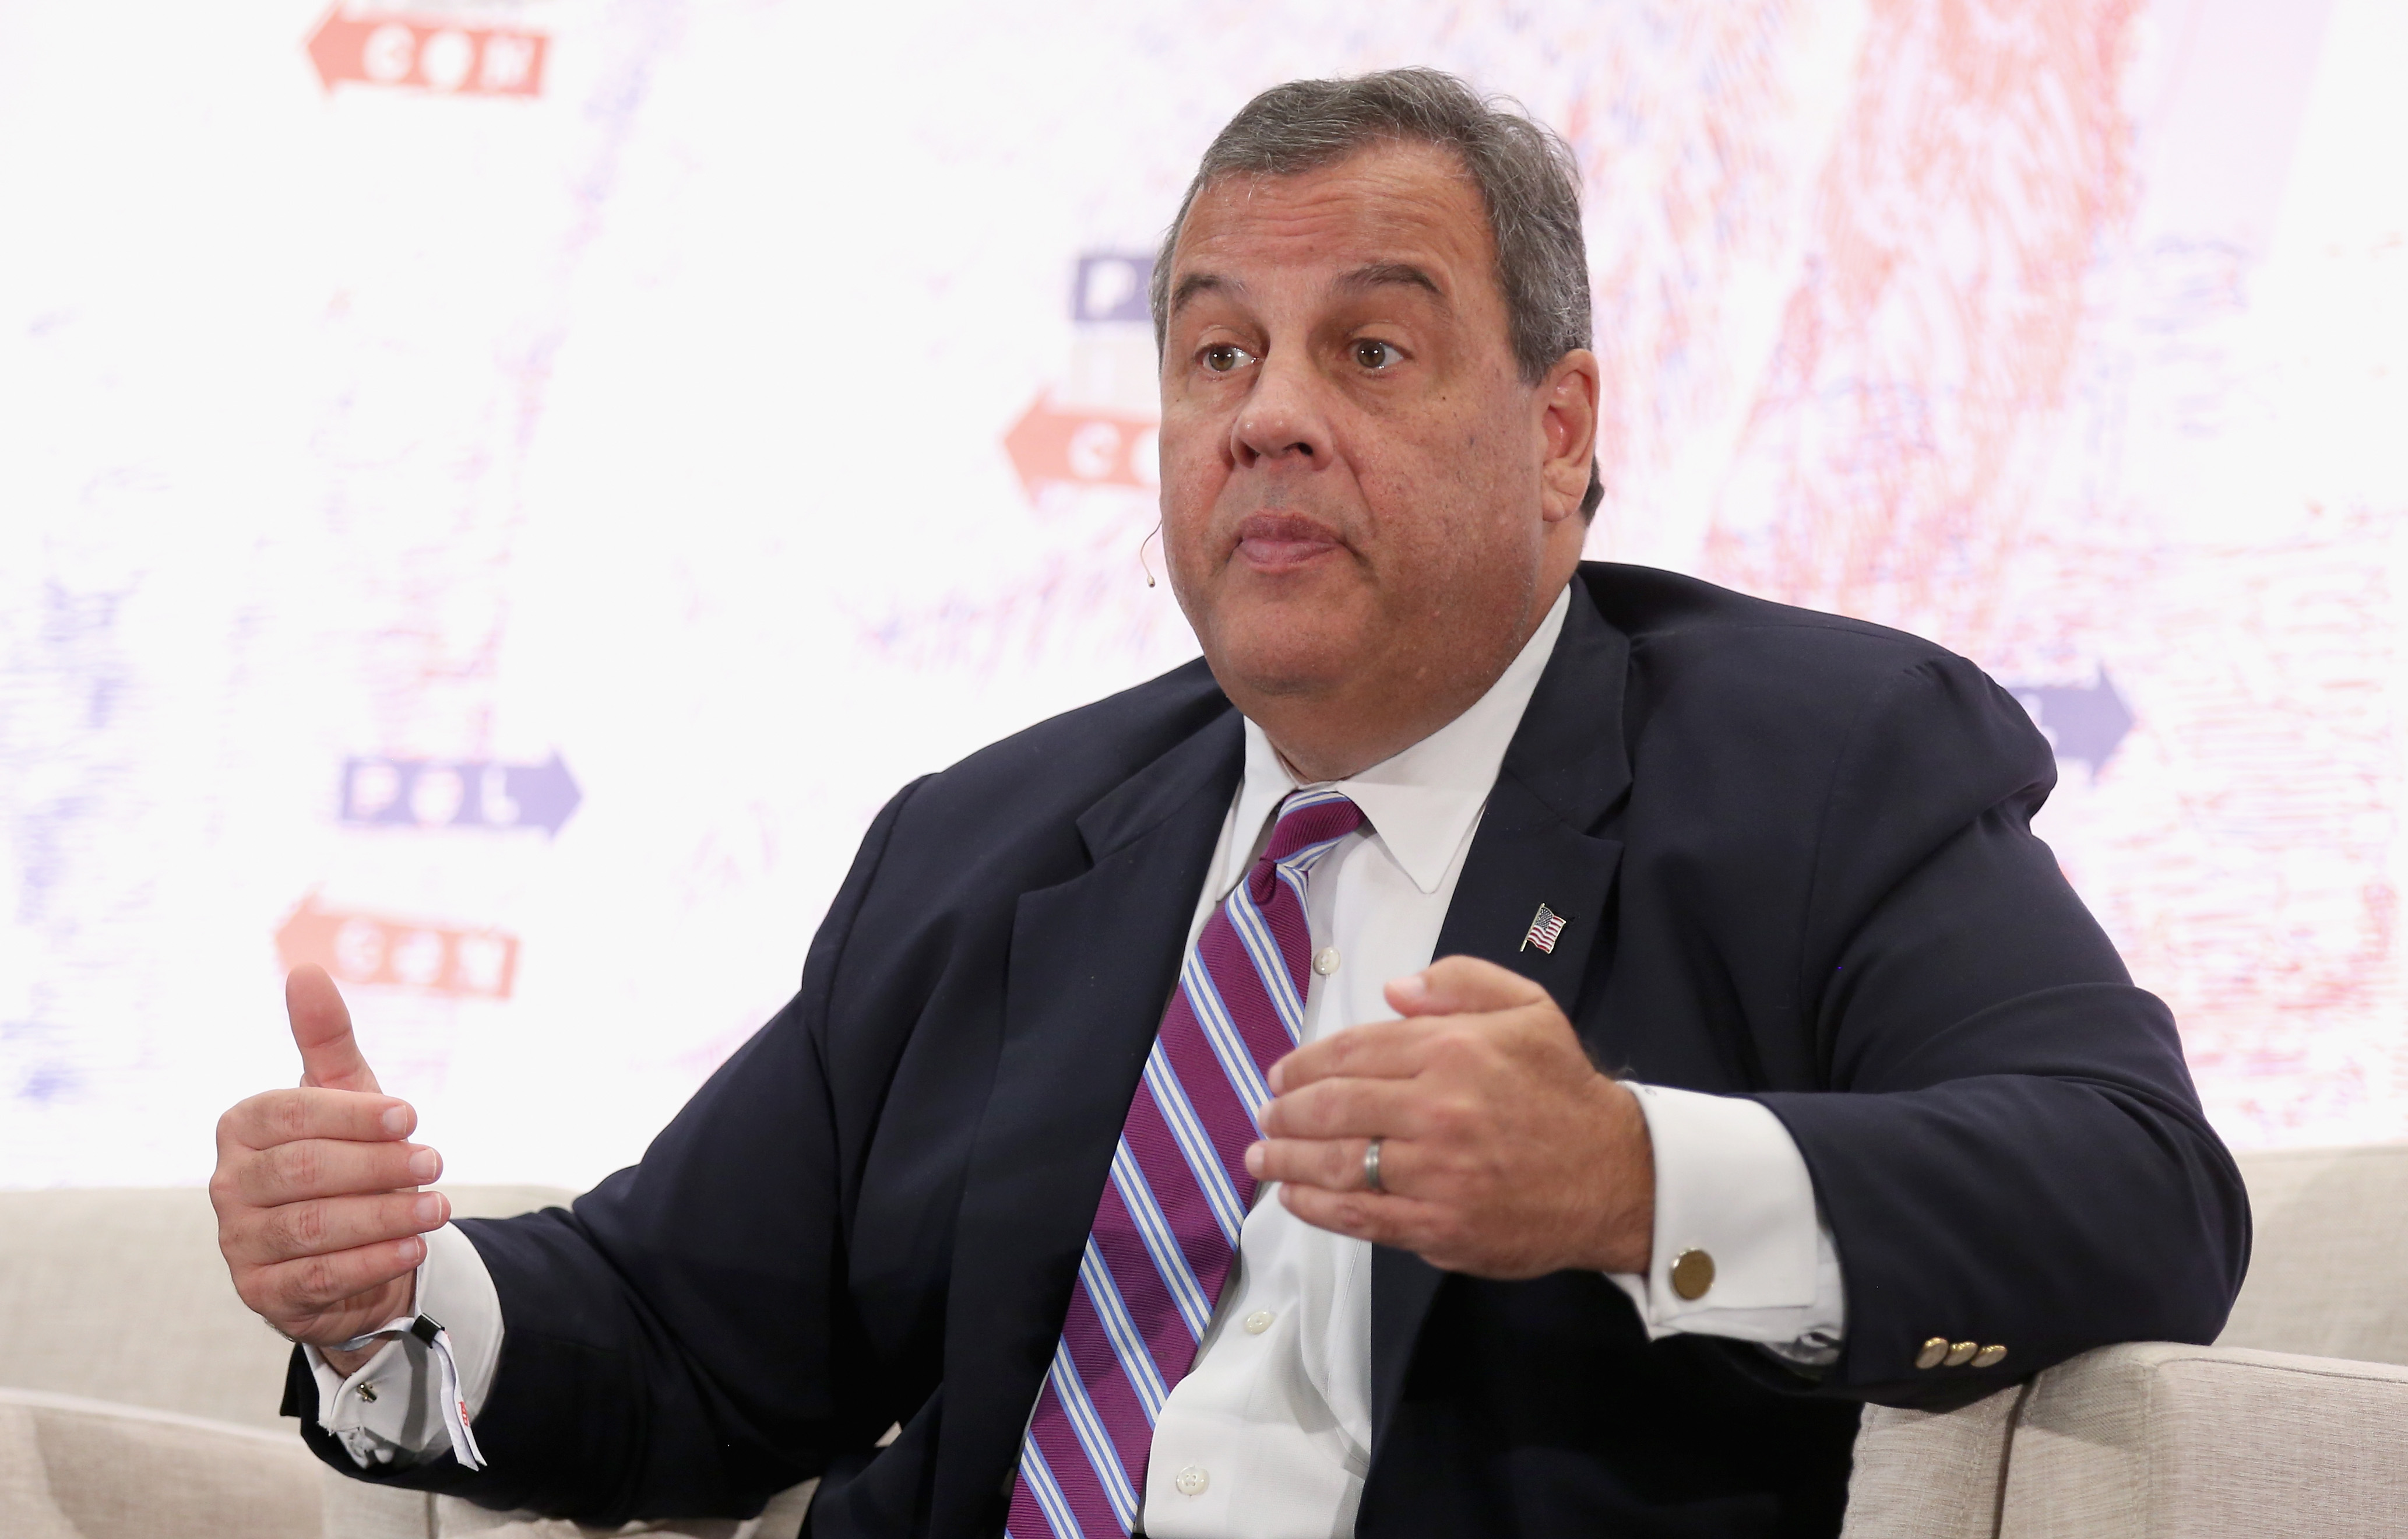 Chris Christie Being Considered For Attorney General